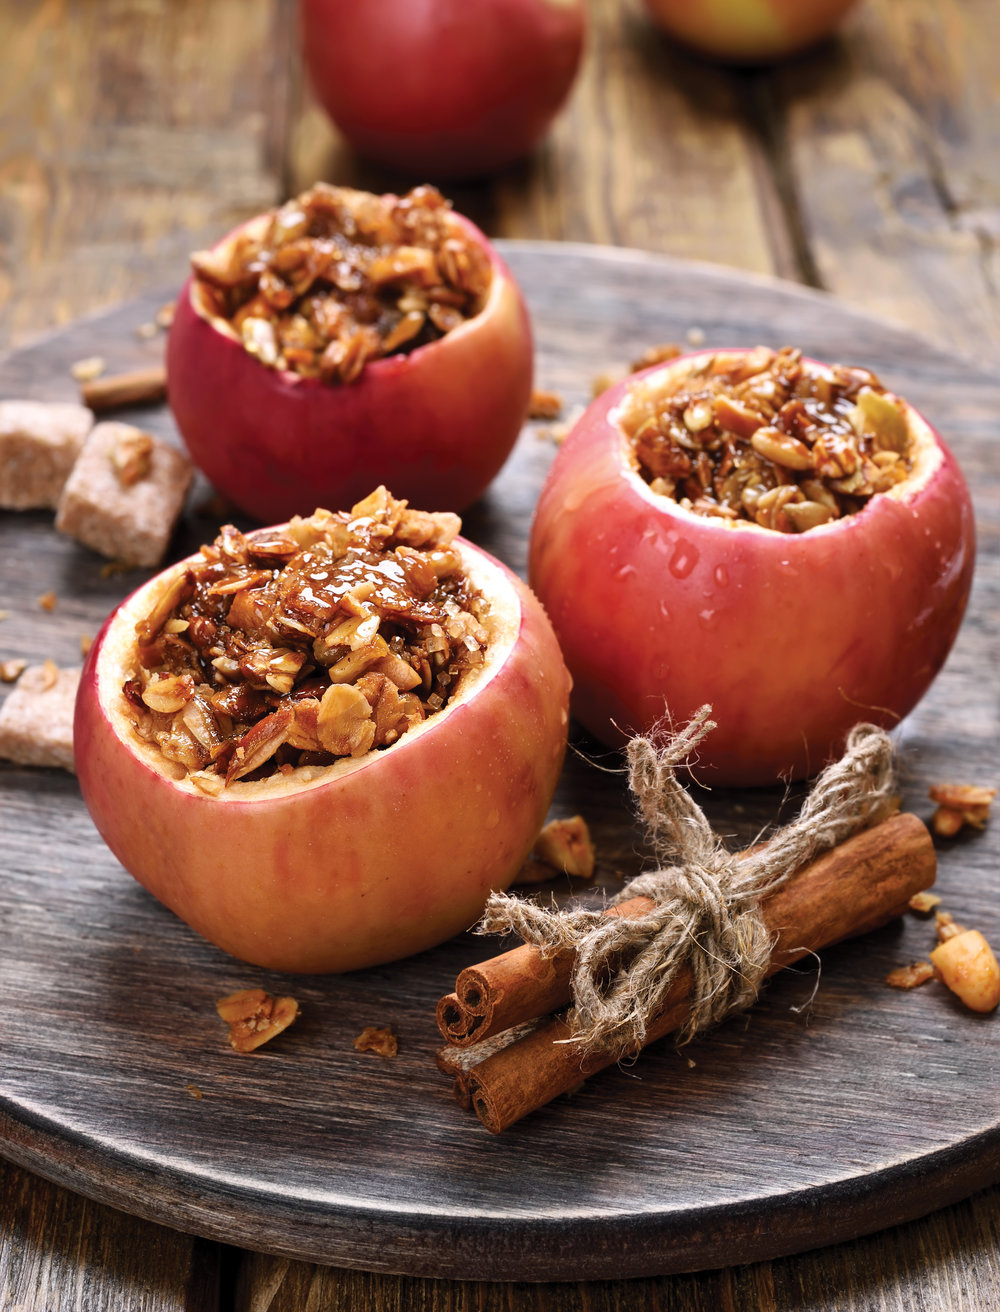 apples-stuffed-with-granola.jpg